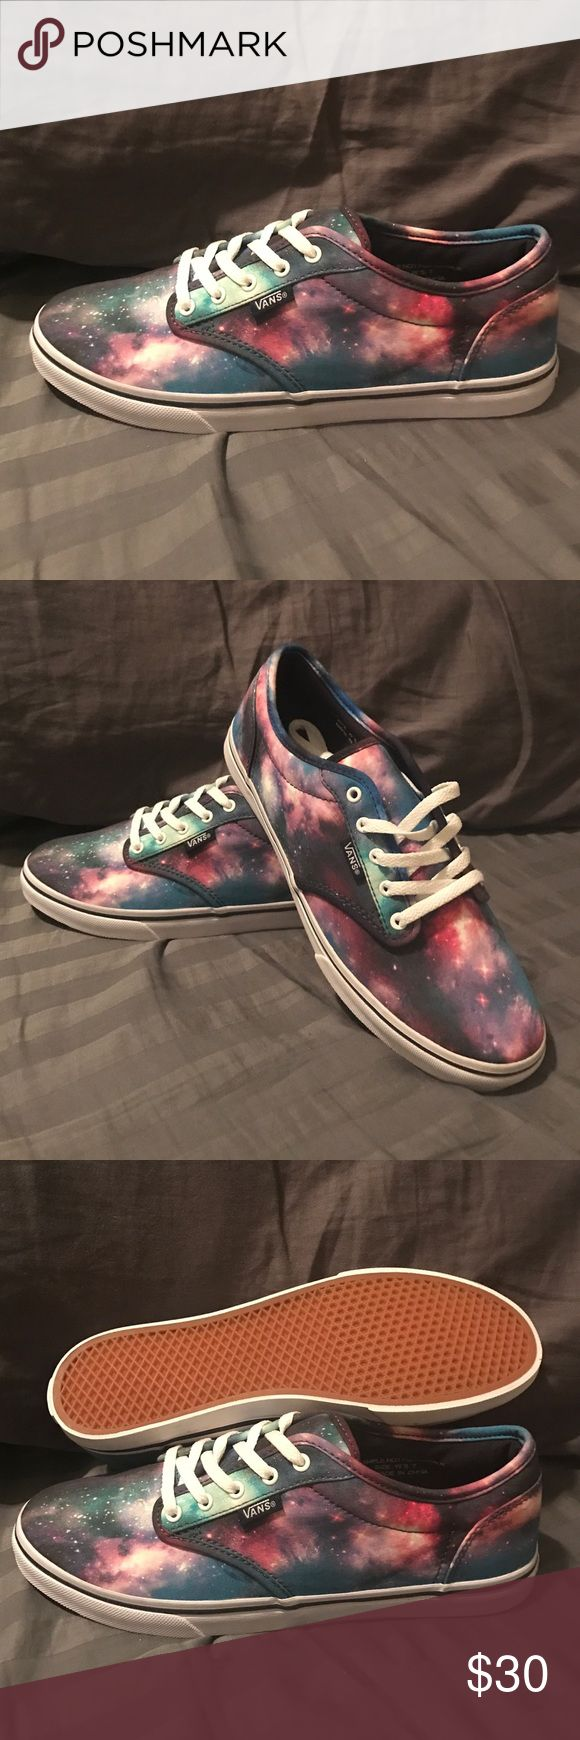 Vans Atwood low Galaxy Print Brand new pair of women's Vans Atwood low. These do mention sample on them, but they fit and are the same exact ones that sell in stores. Vans Shoes Athletic Shoes